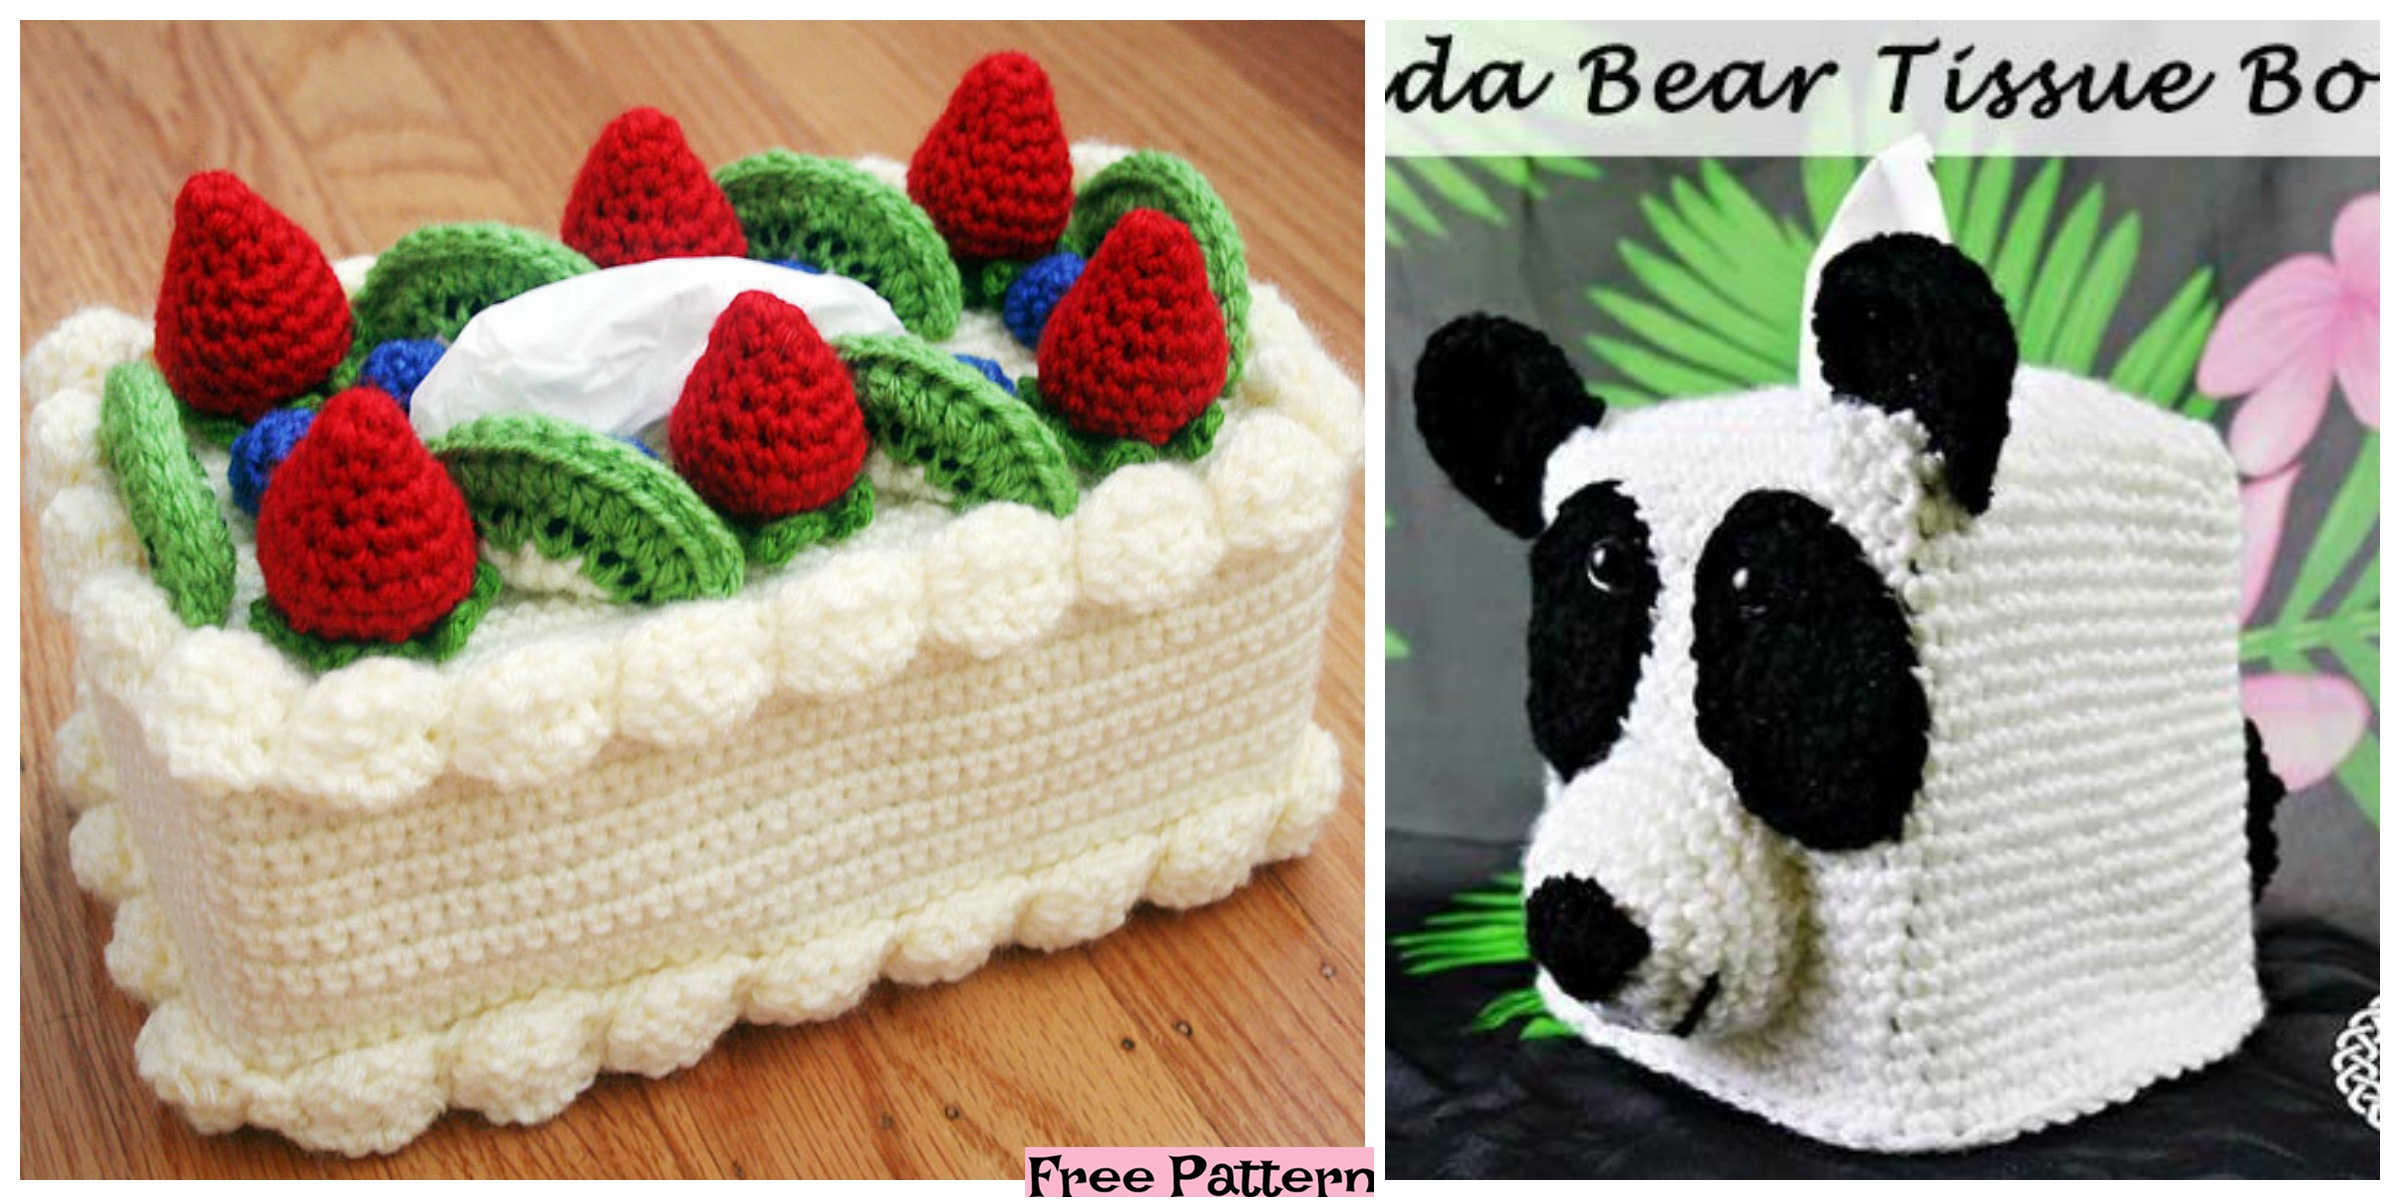 8 Tissue Box Cover Free Crochet Patterns